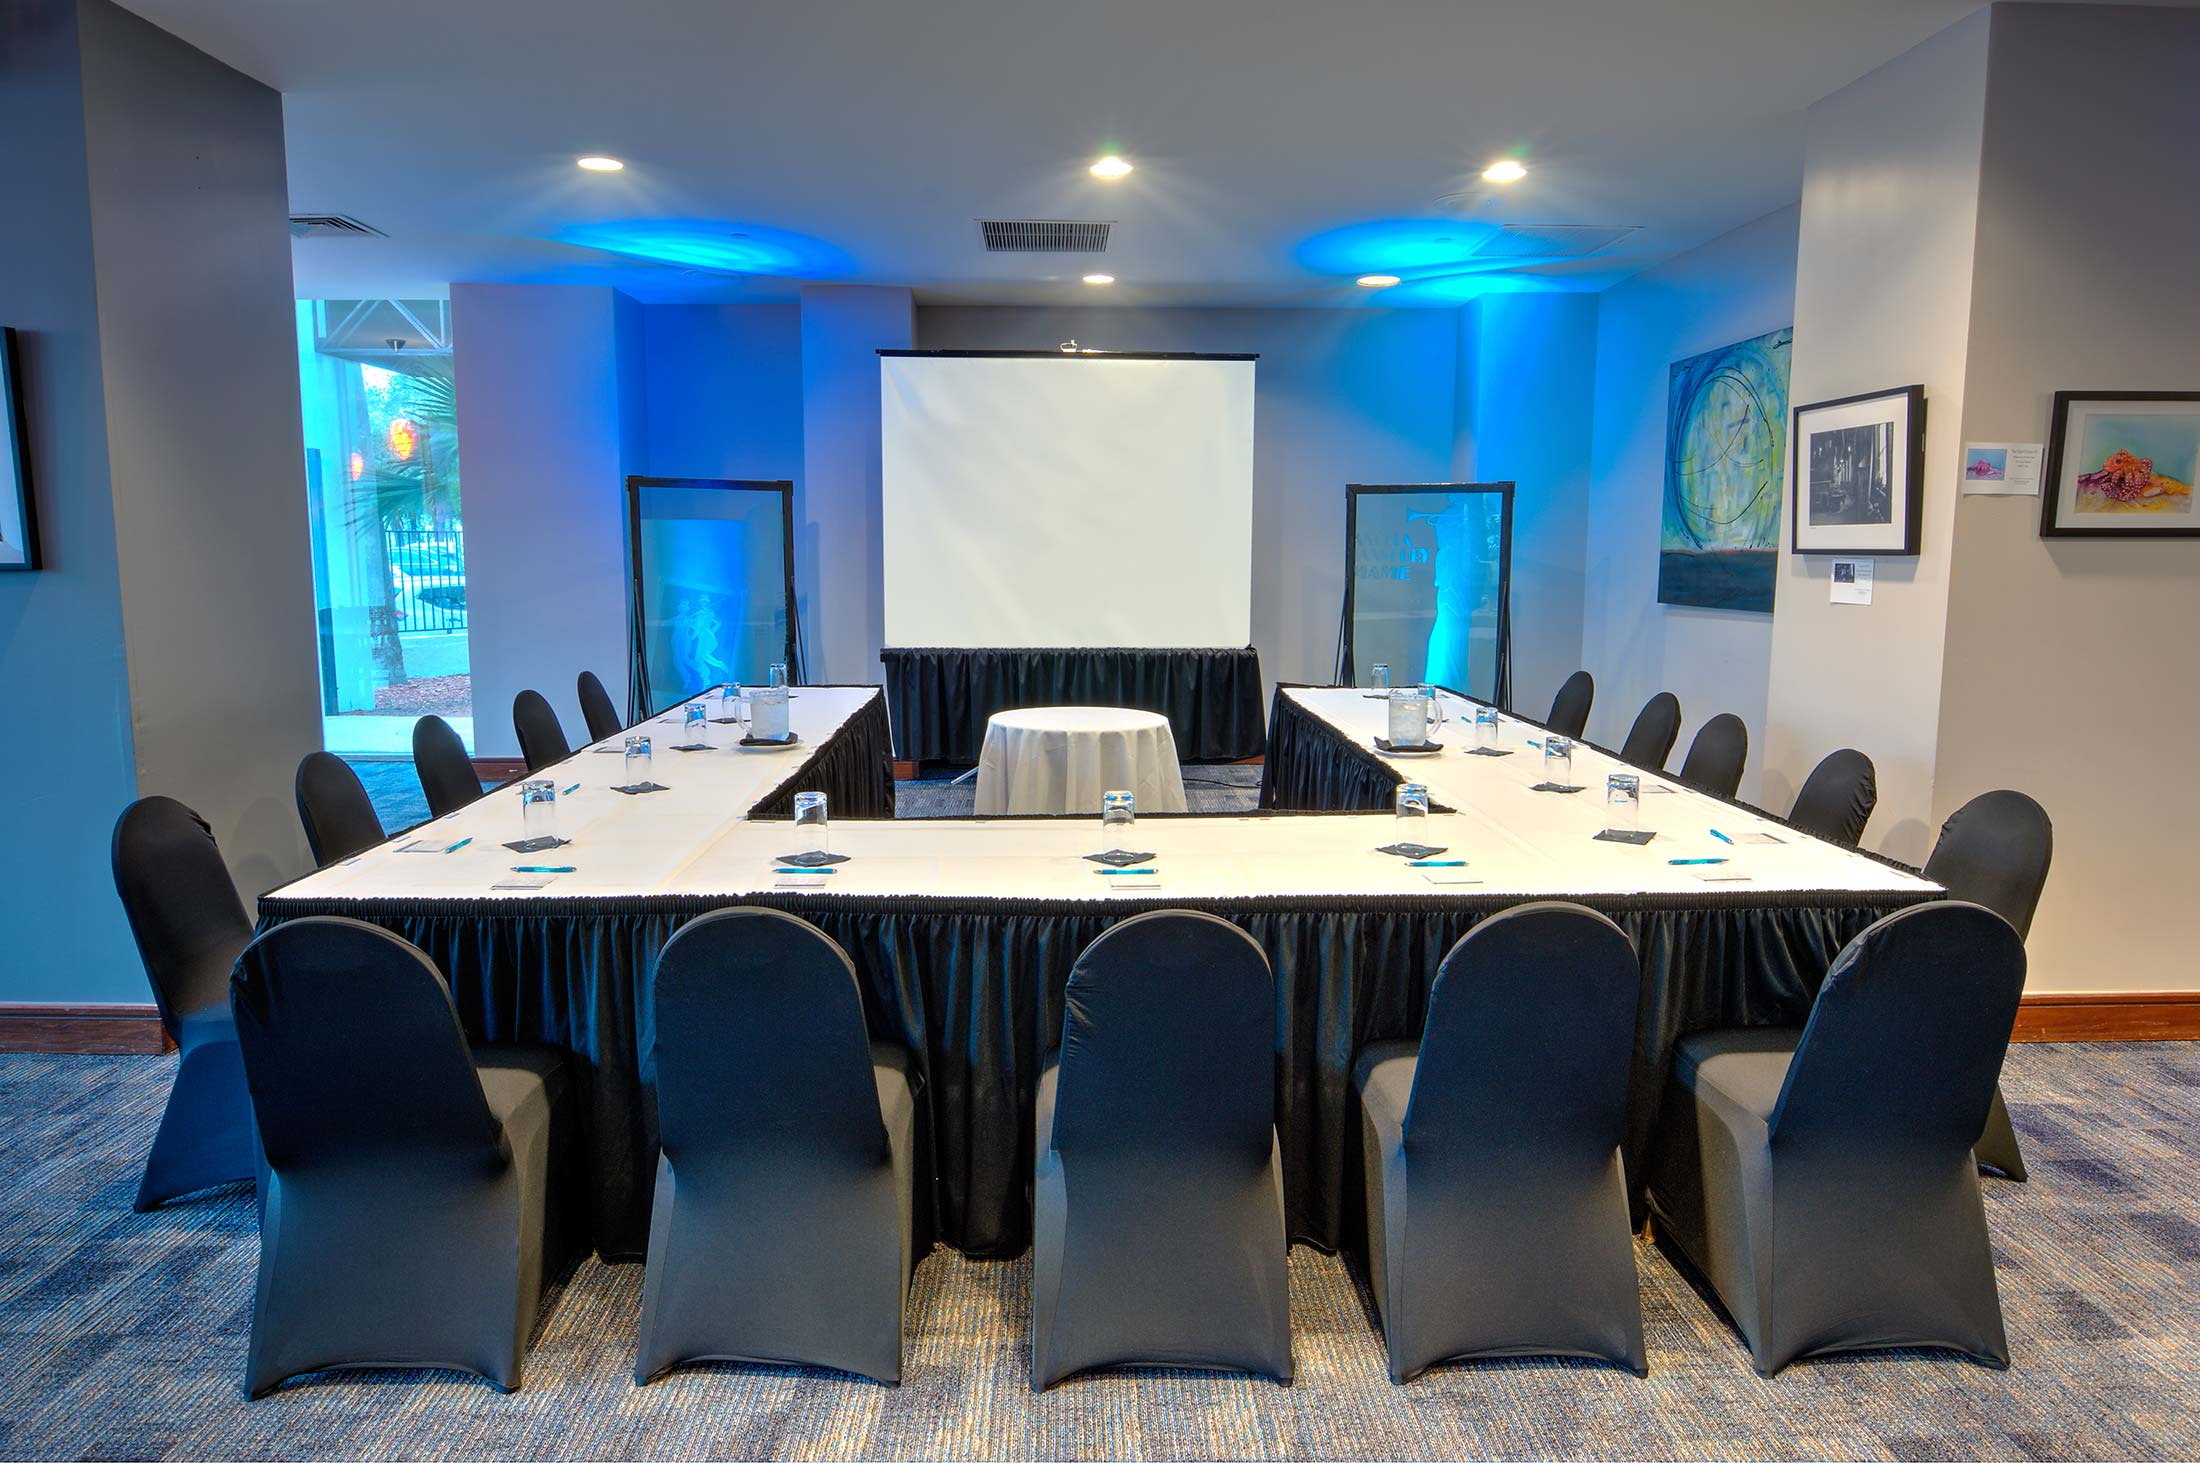 u-shape chair setup for meetings with projector screen